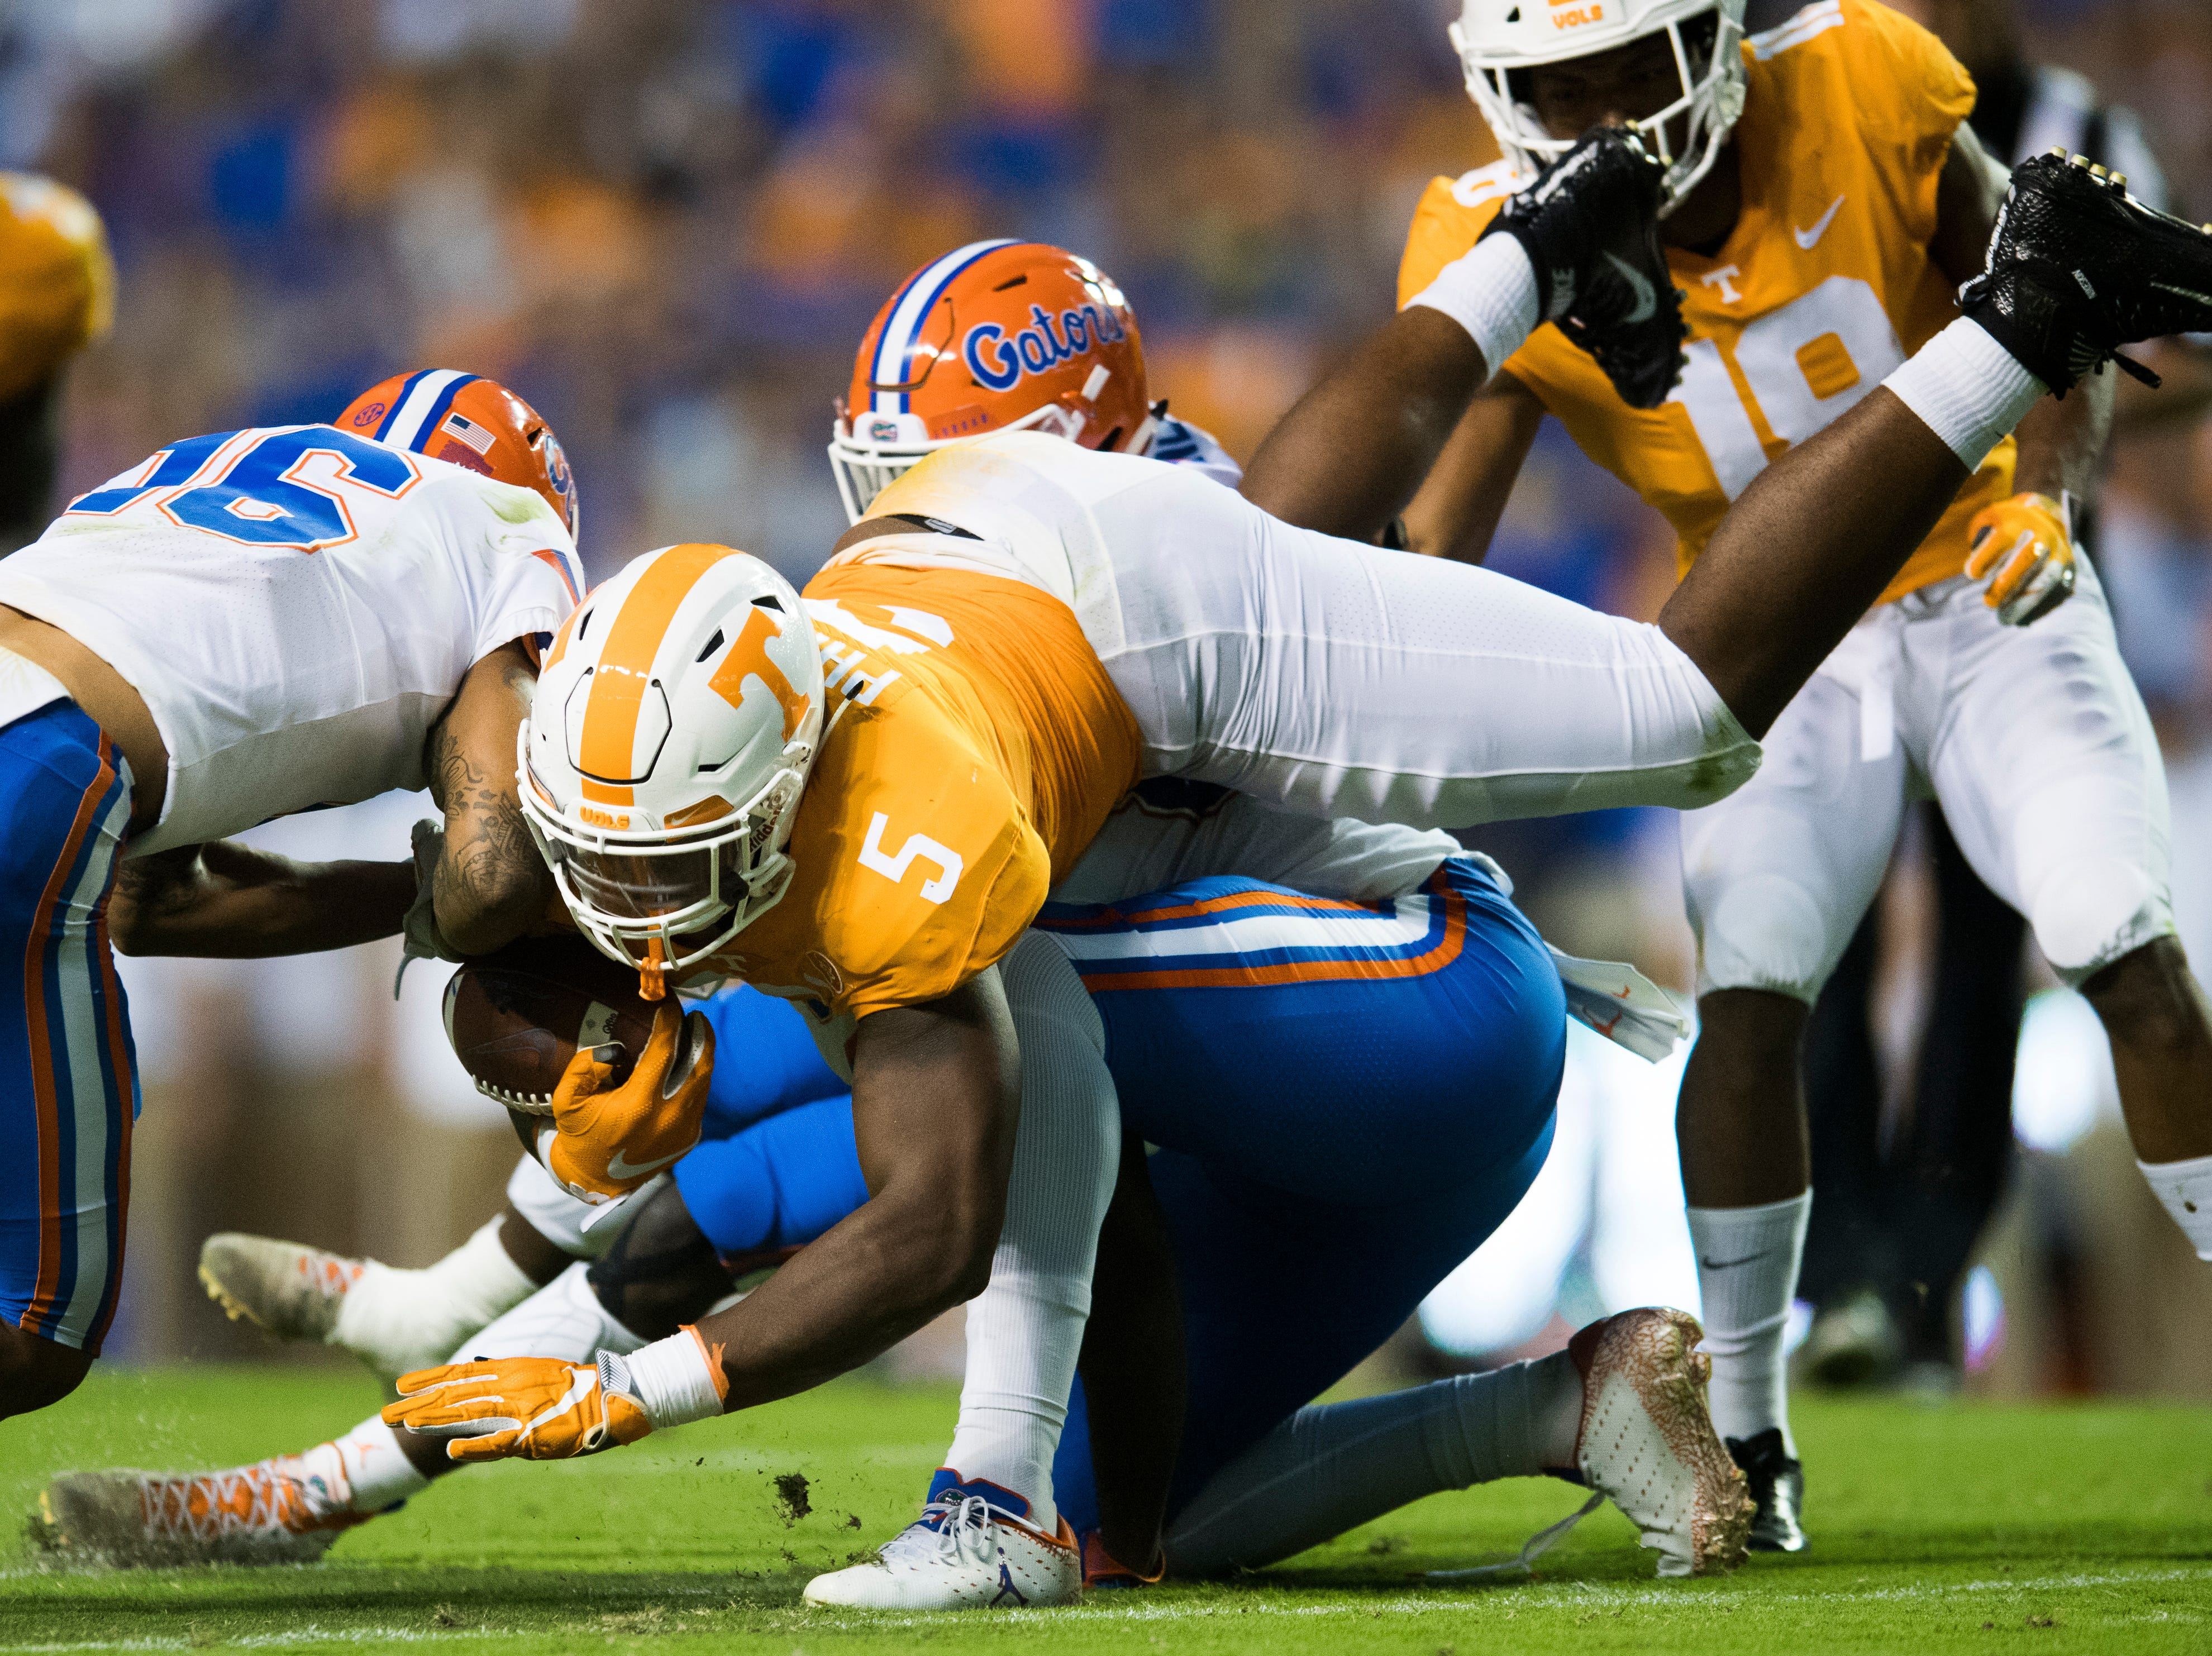 Tennessee defensive lineman Kyle Phillips (5) slides over Florida tight end Kemore Gamble (88) during a game between Tennessee and Florida at Neyland Stadium in Knoxville, Tennessee on Saturday, September 22, 2018.